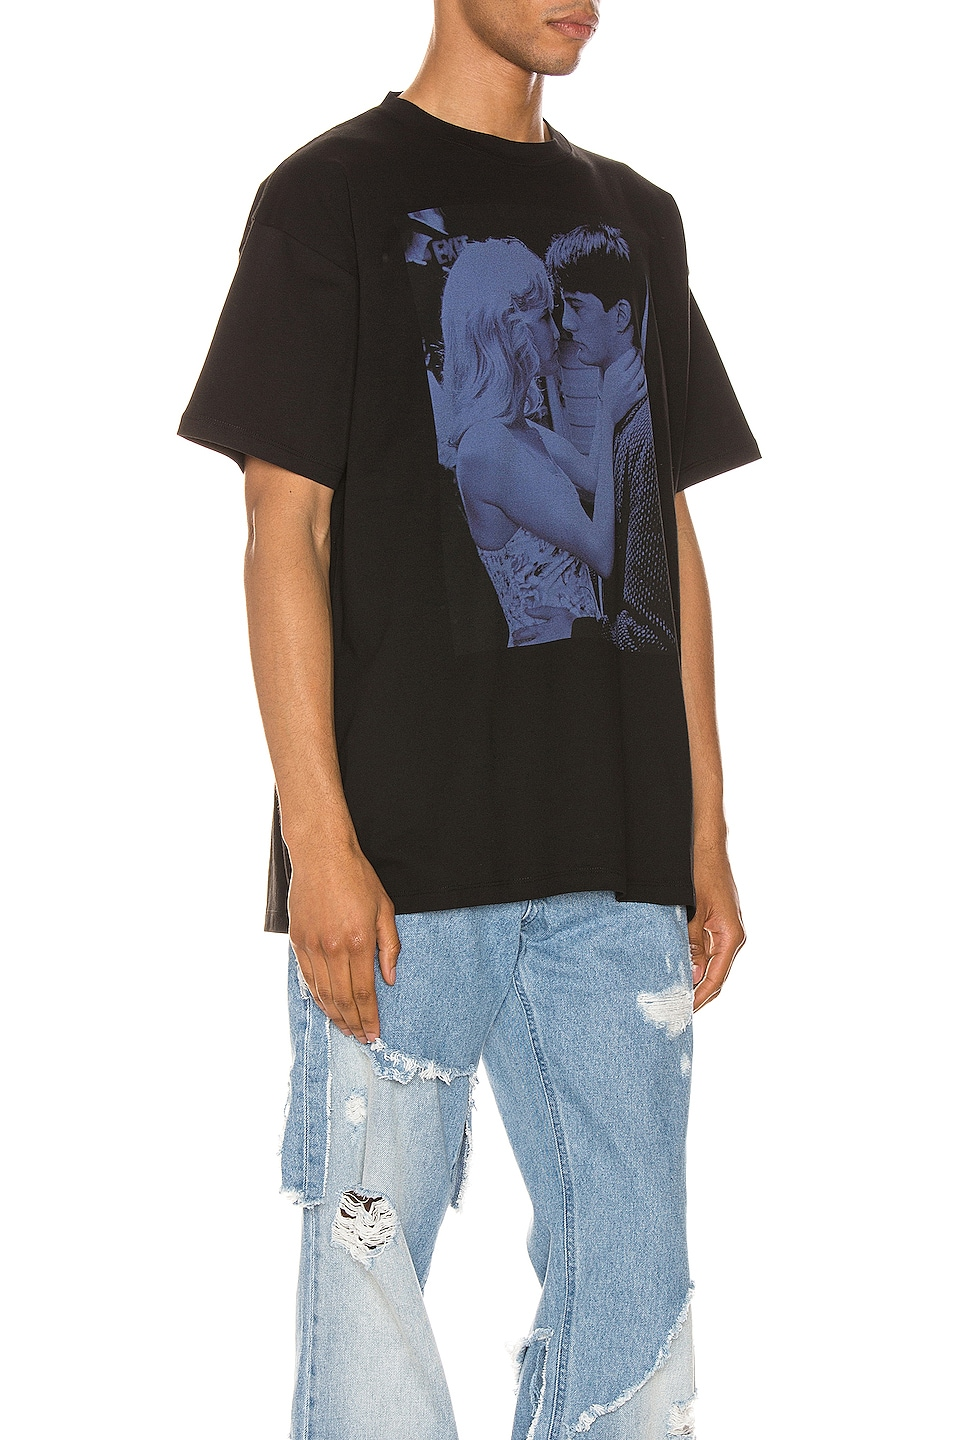 Image 2 of Raf Simons Blue Couple Tee in Black